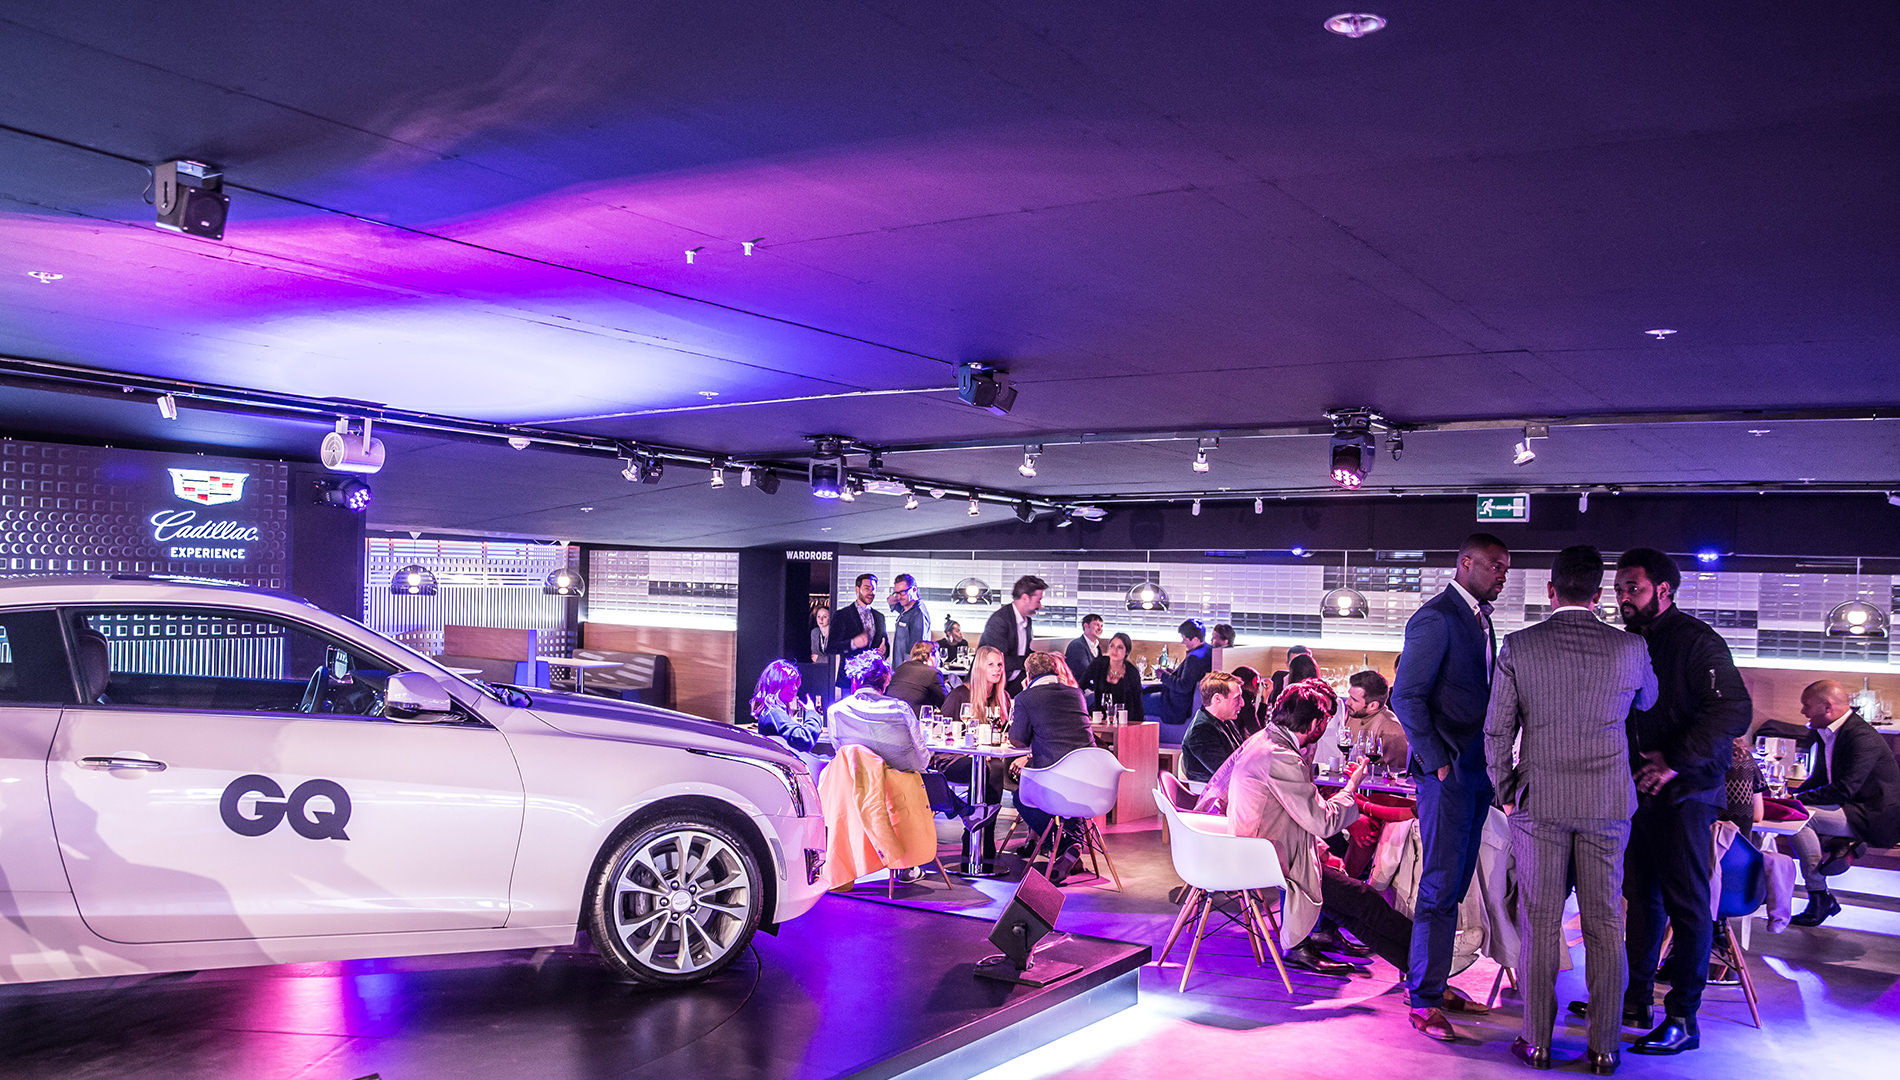 Messe Design Live Kommunikation Berlin Cadillac Experience Gäste Essen Going Places EventLabs